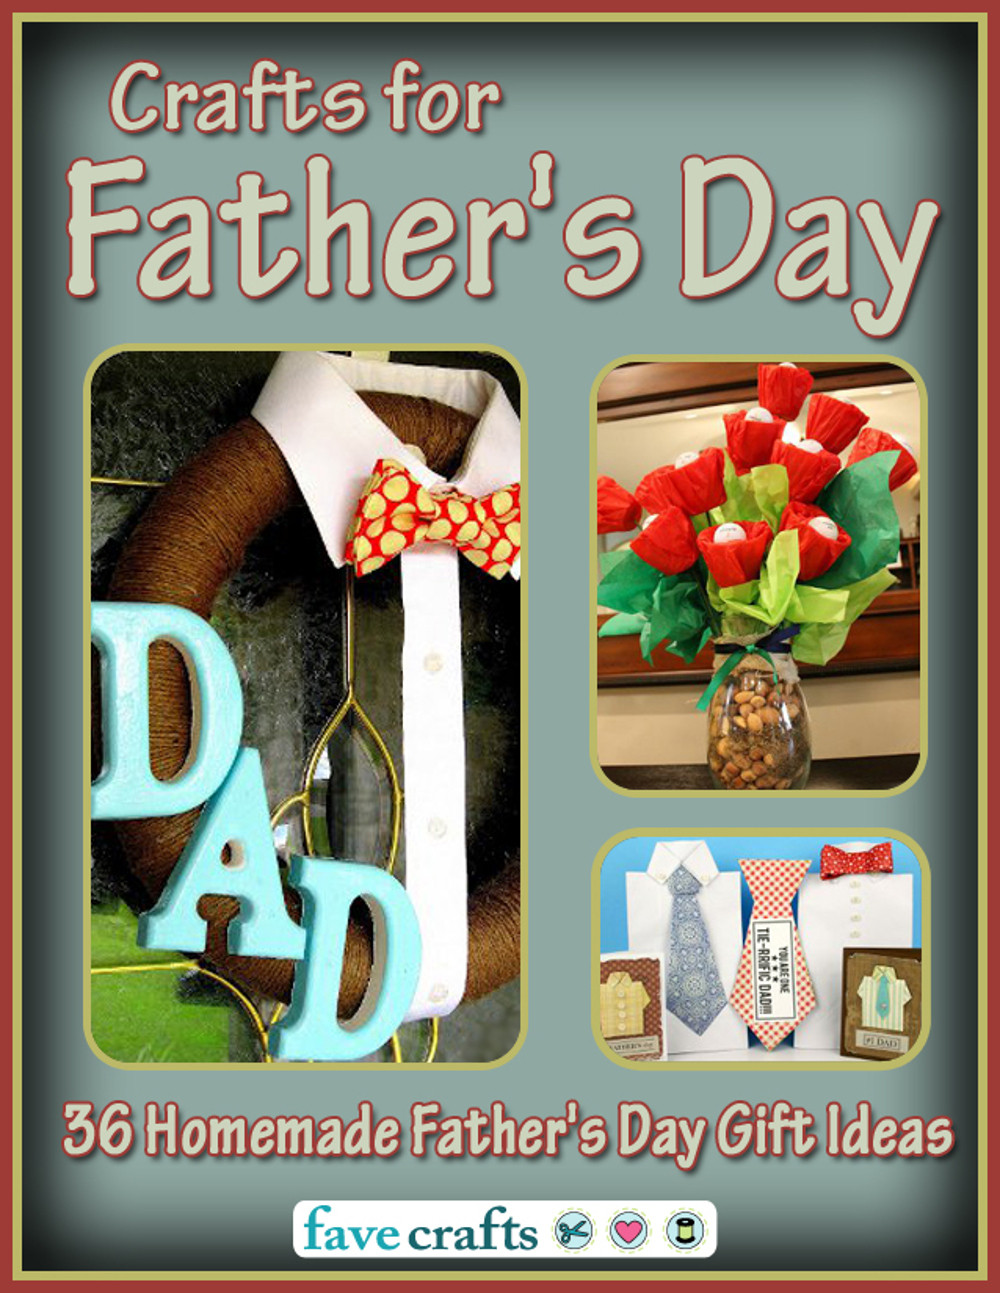 Best ideas about Homemade Fathers Day Gift Ideas . Save or Pin Crafts for Father s Day 36 Homemade Father s Day Gift Now.